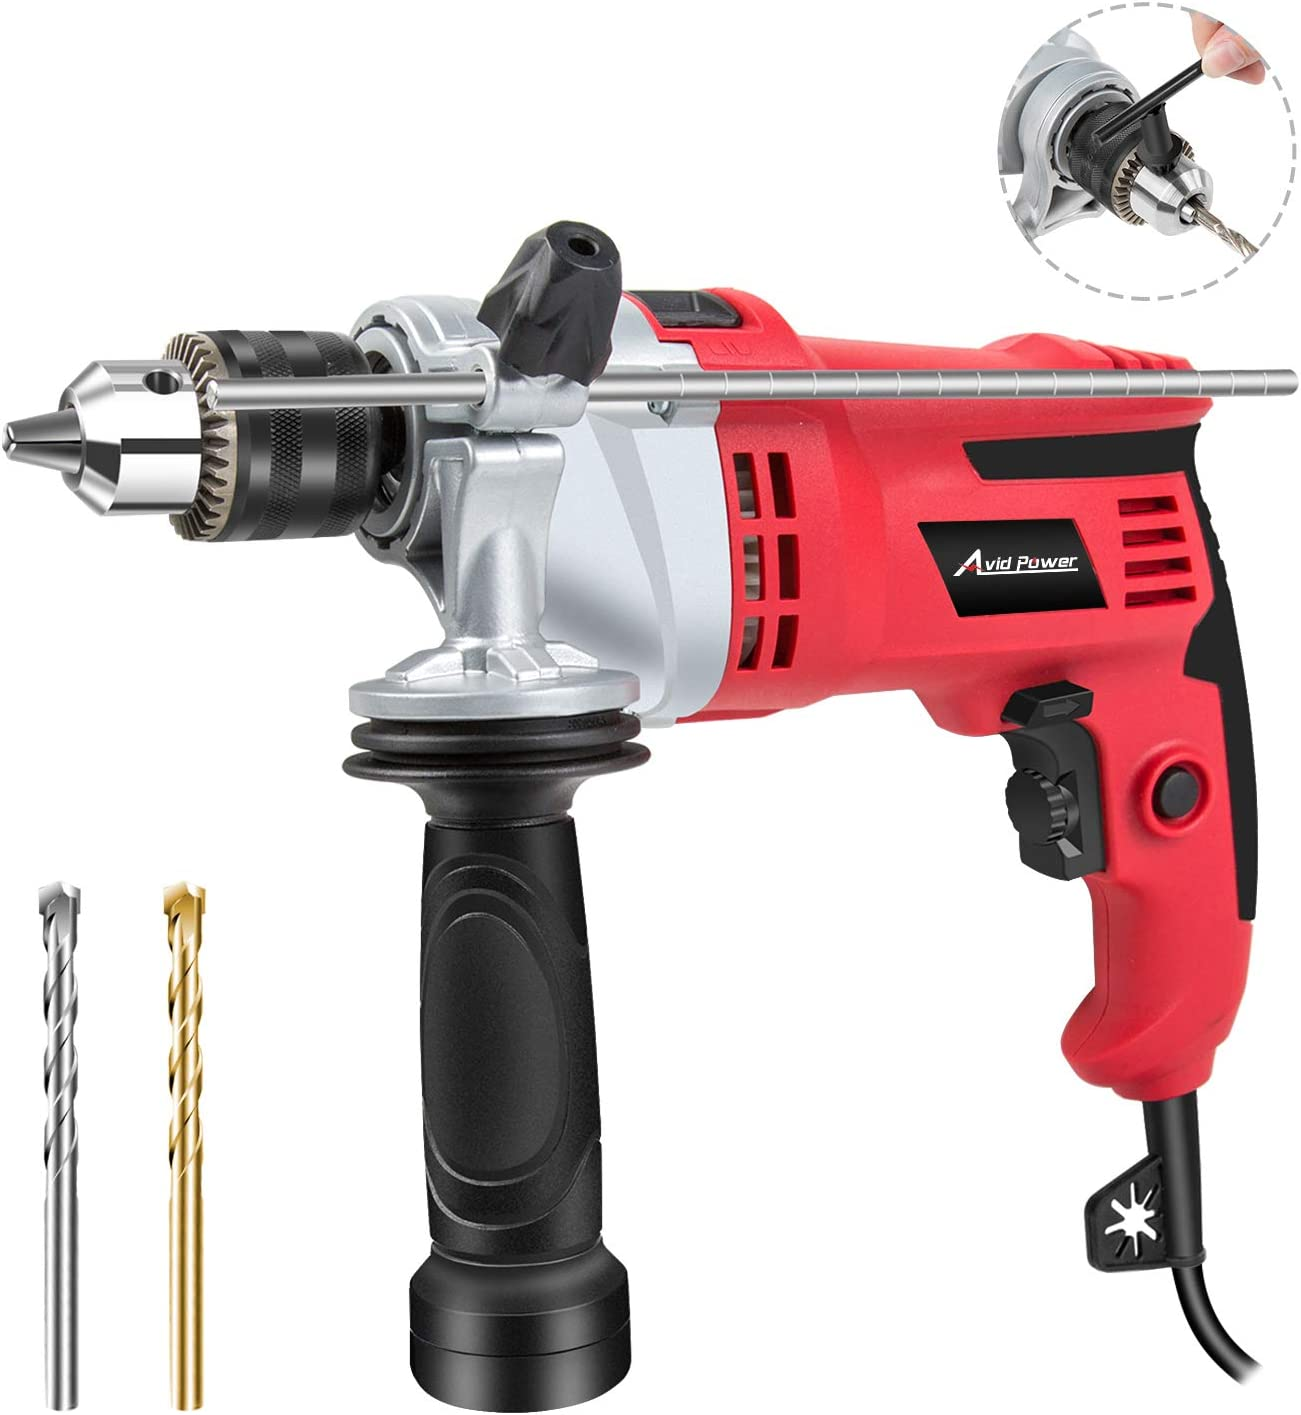 Hammer Drill, 7.0Amp 3000Rpm 1 2-Inch Corded Drill Hammer with Dual Drill Modes, Variable Speed, 360 Rotating Handle for Brick, Wood, Steel, Masonry, 2 Drill Bits Included, Avid Power MEID377